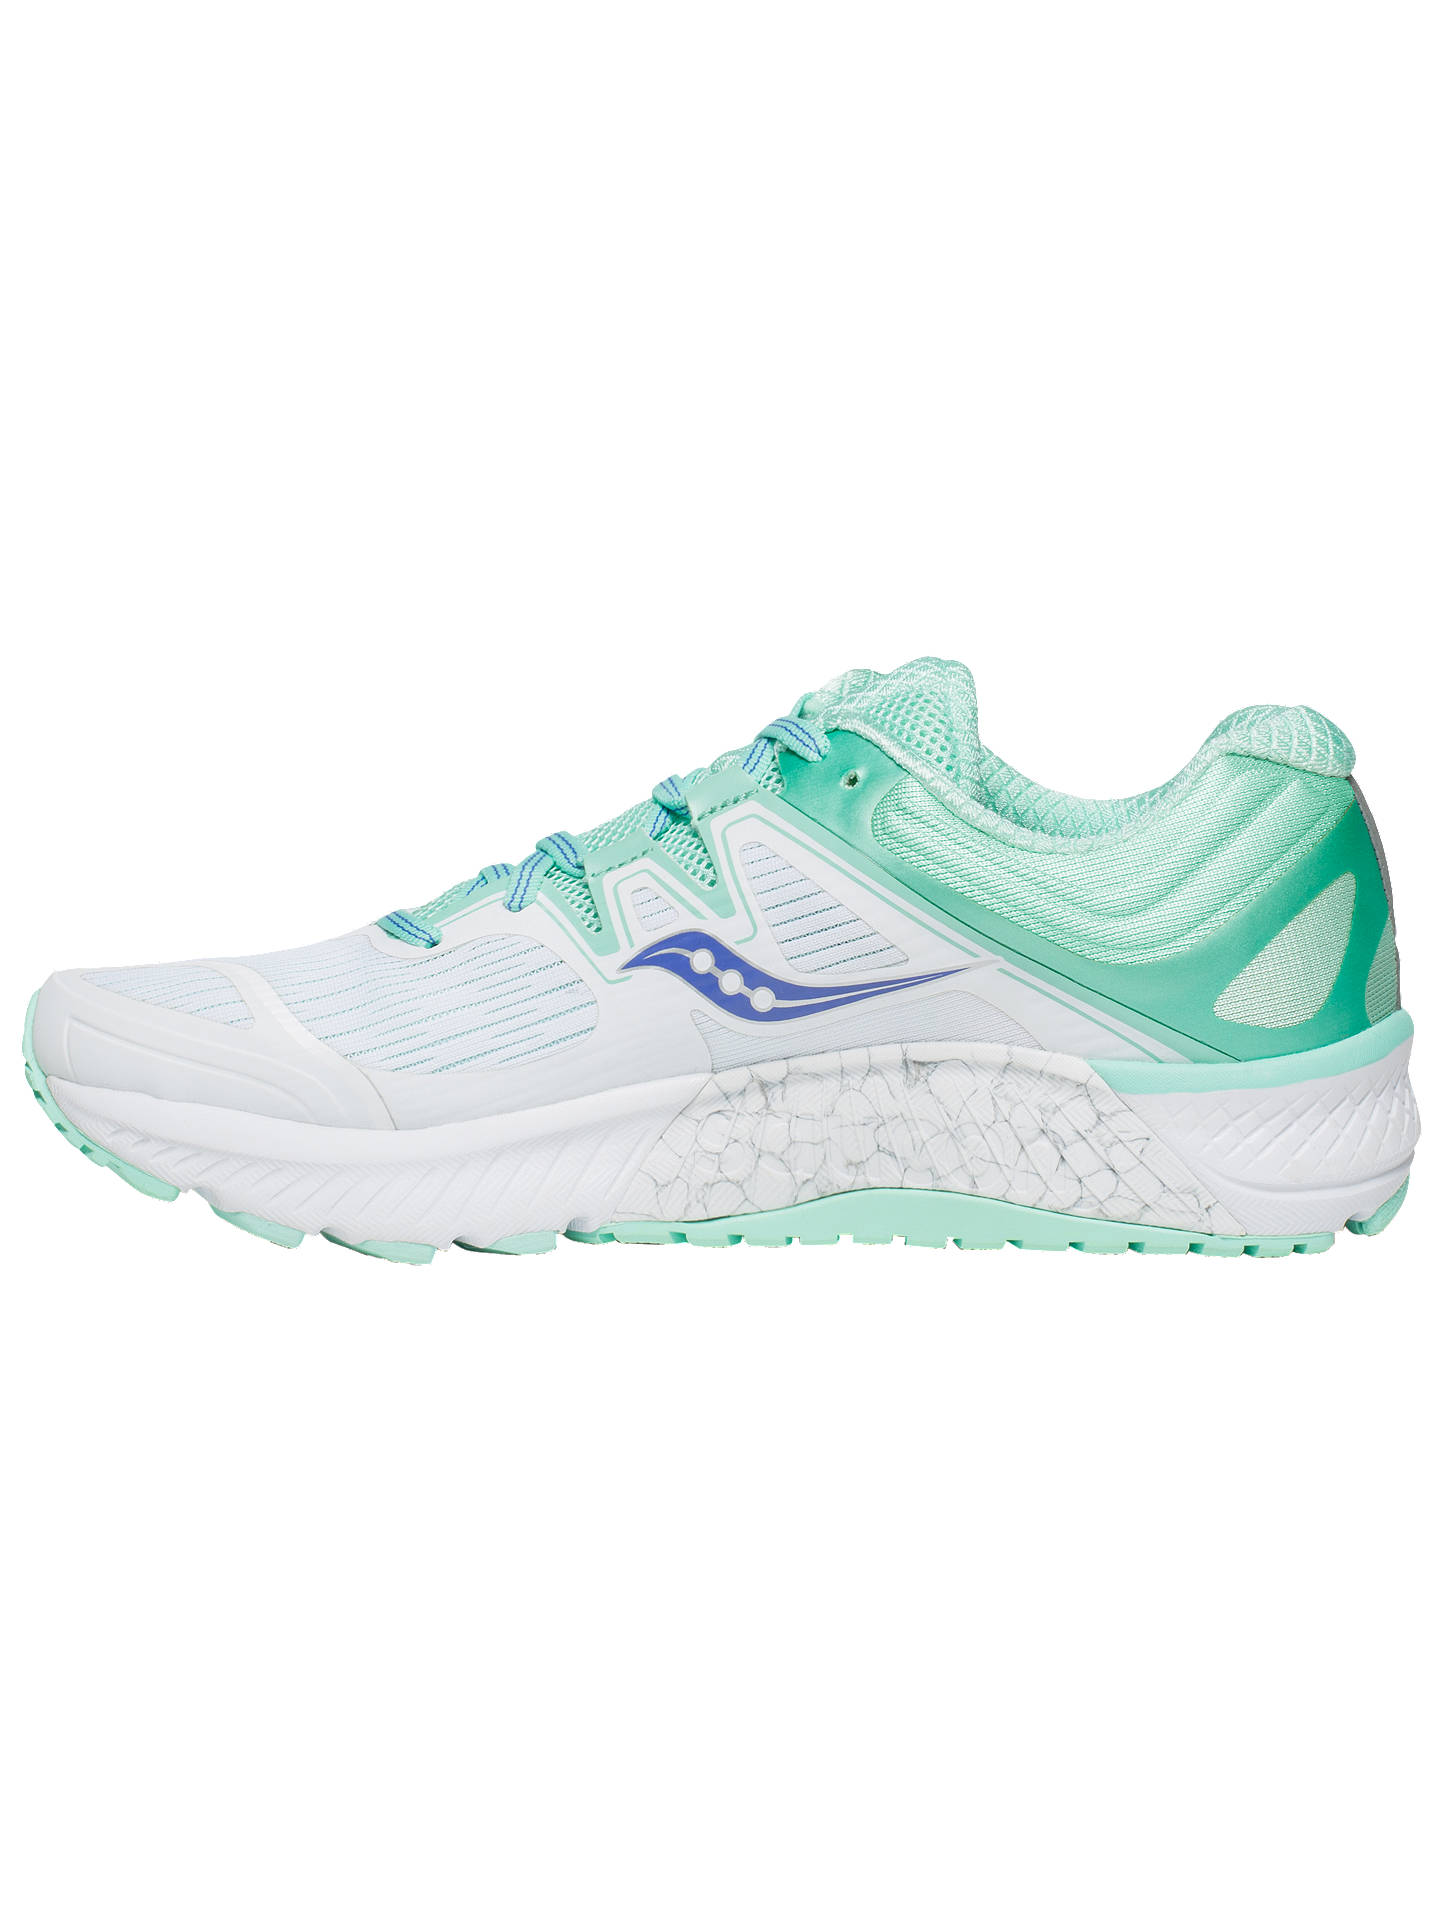 Saucony Guide ISO Running Shoes (For Girls)